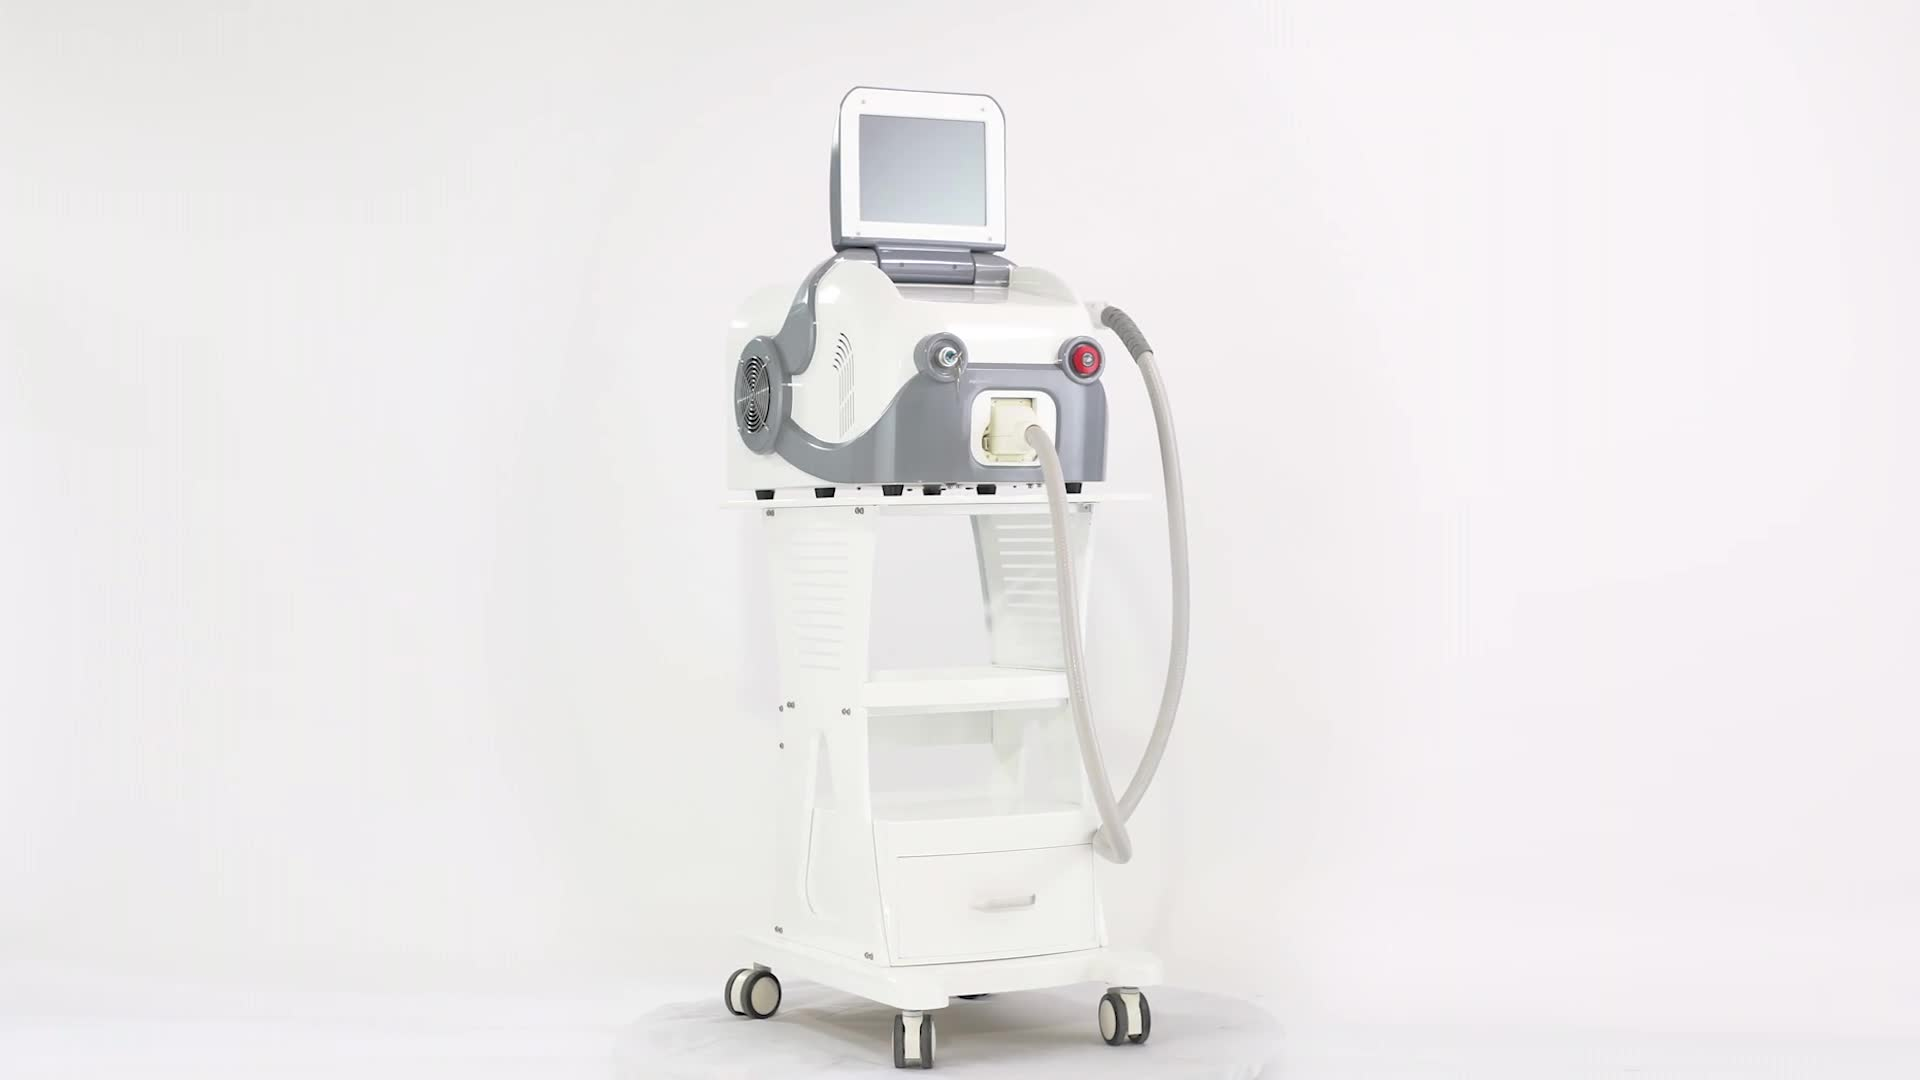 diode laser hair removal machine can do full body laser hair removal